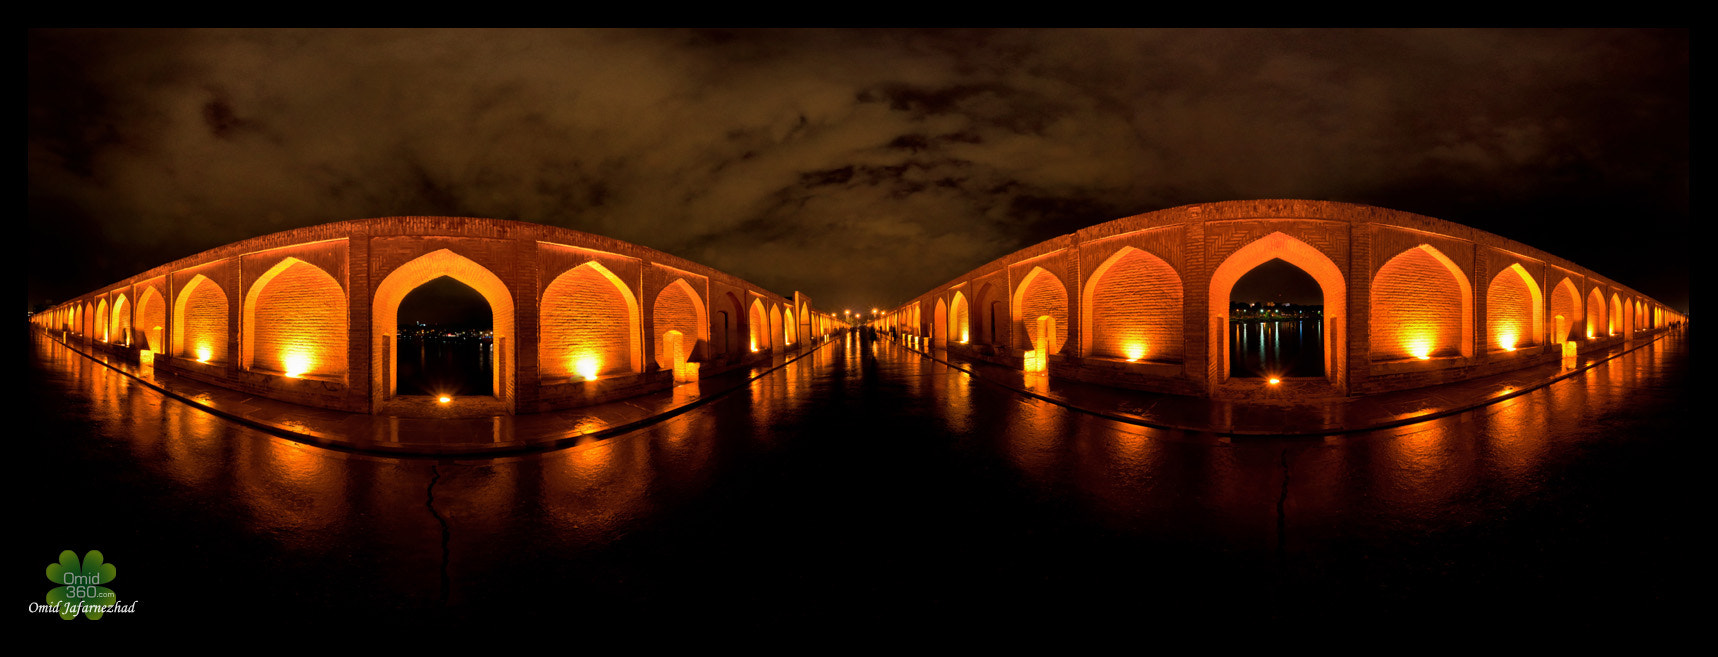 Photograph Si-o-seh Pol in Rainy Night pano by Omid Jafarnezhad on 500px